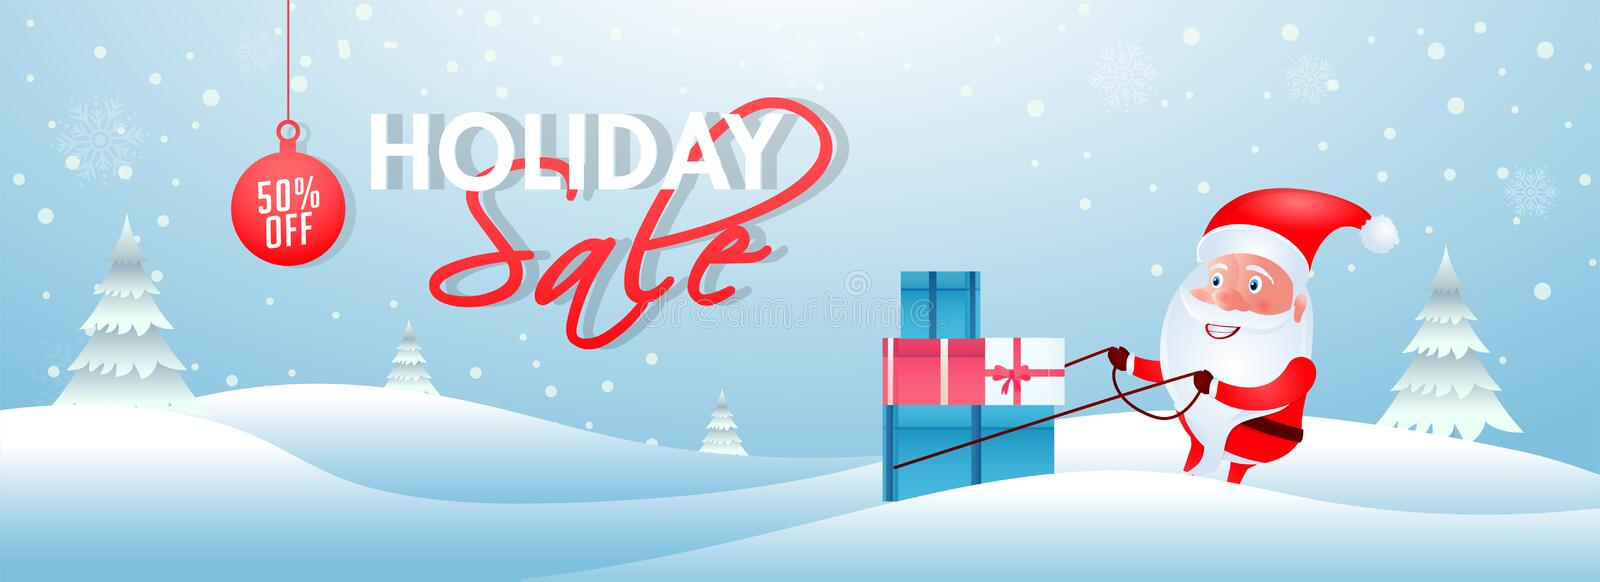 Holiday Sale header or banner design with 50% discount offer and illustration of santa claus dragging gift boxes on snowfall vector illustration